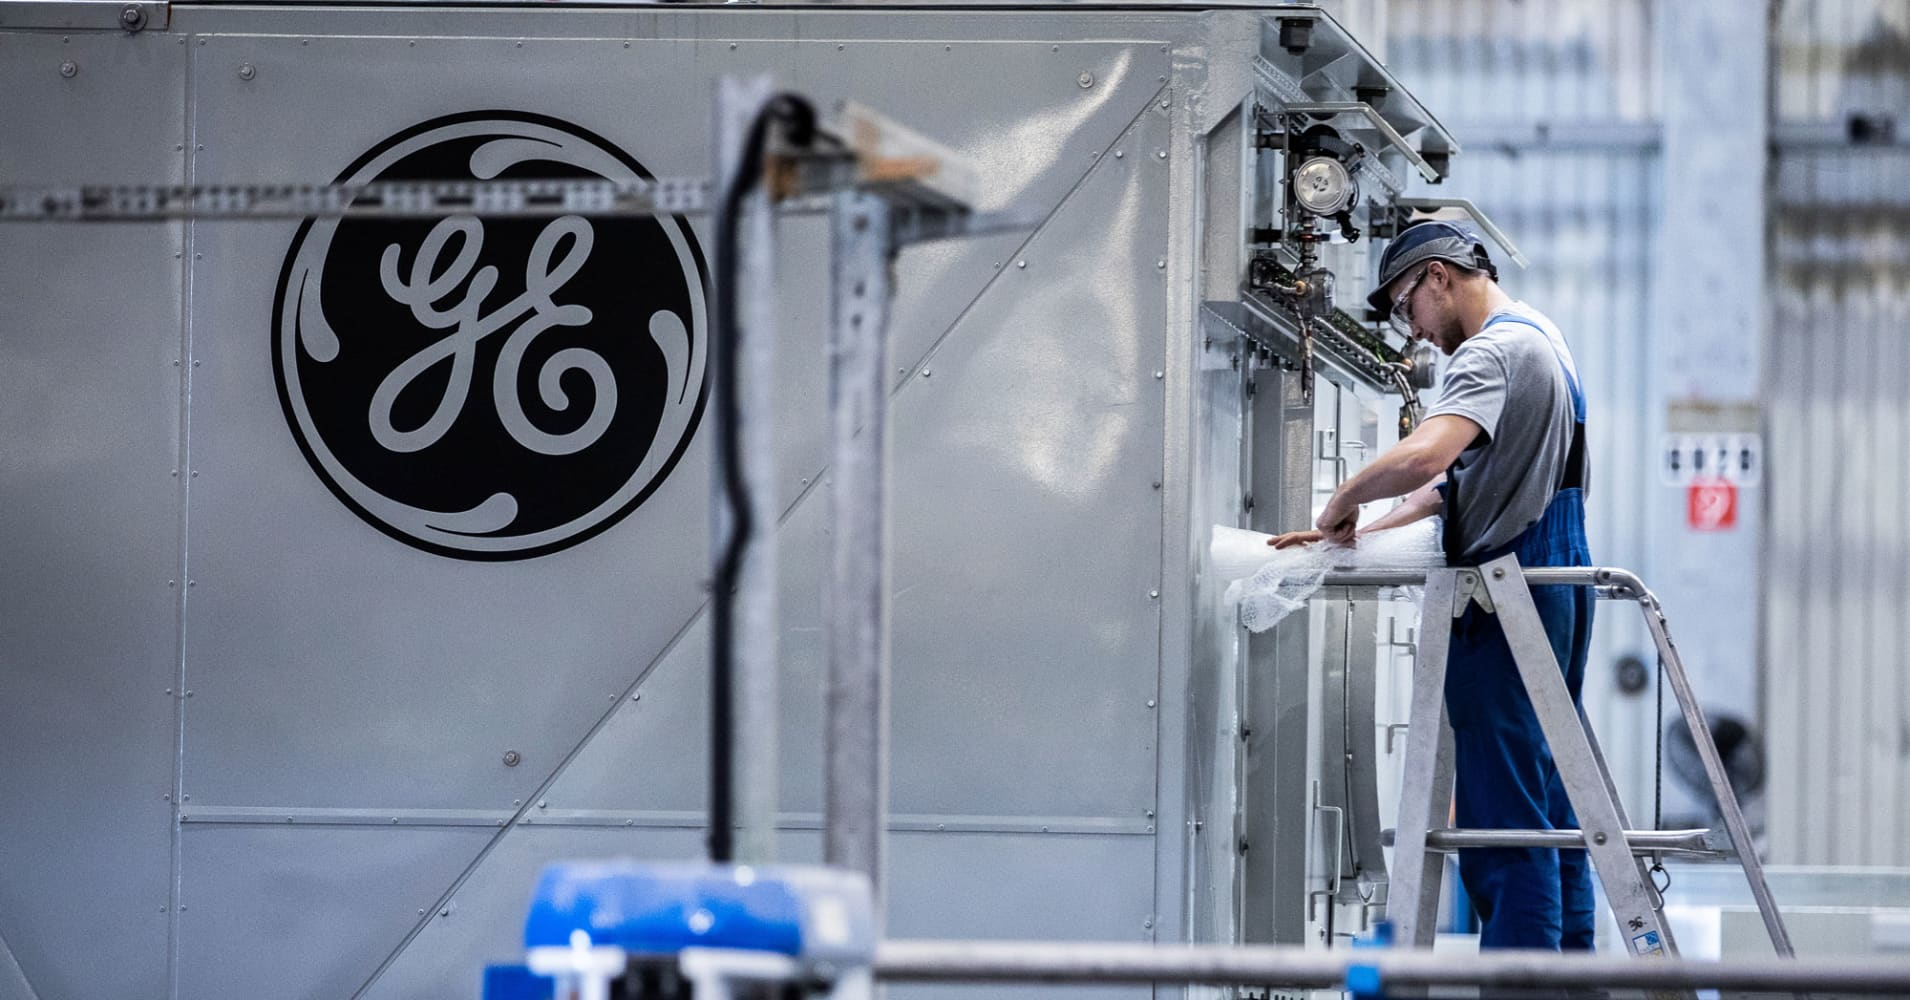 Don't count out GE yet, cash flow problems are temporary: Analysts